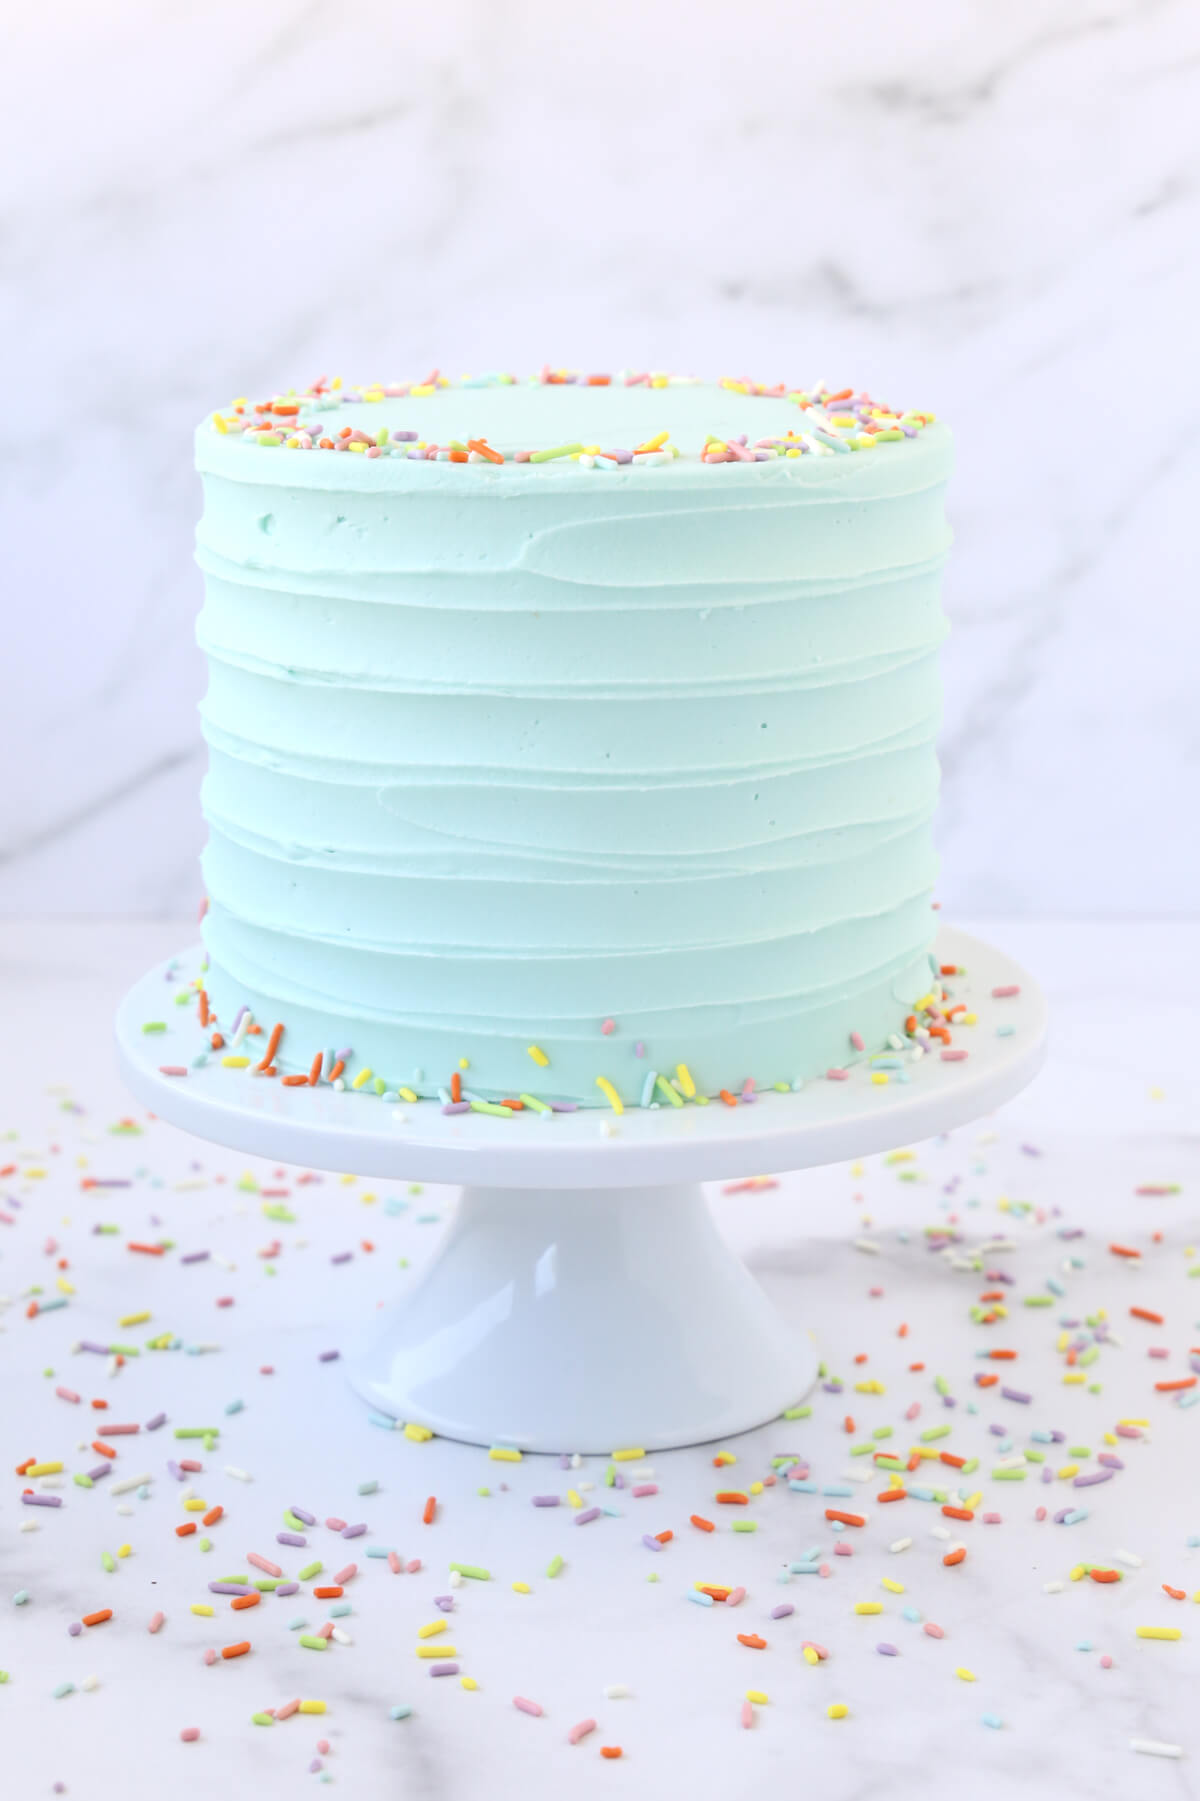 a turquoise frosted cake on a white cake stand surrounded by sprinkles